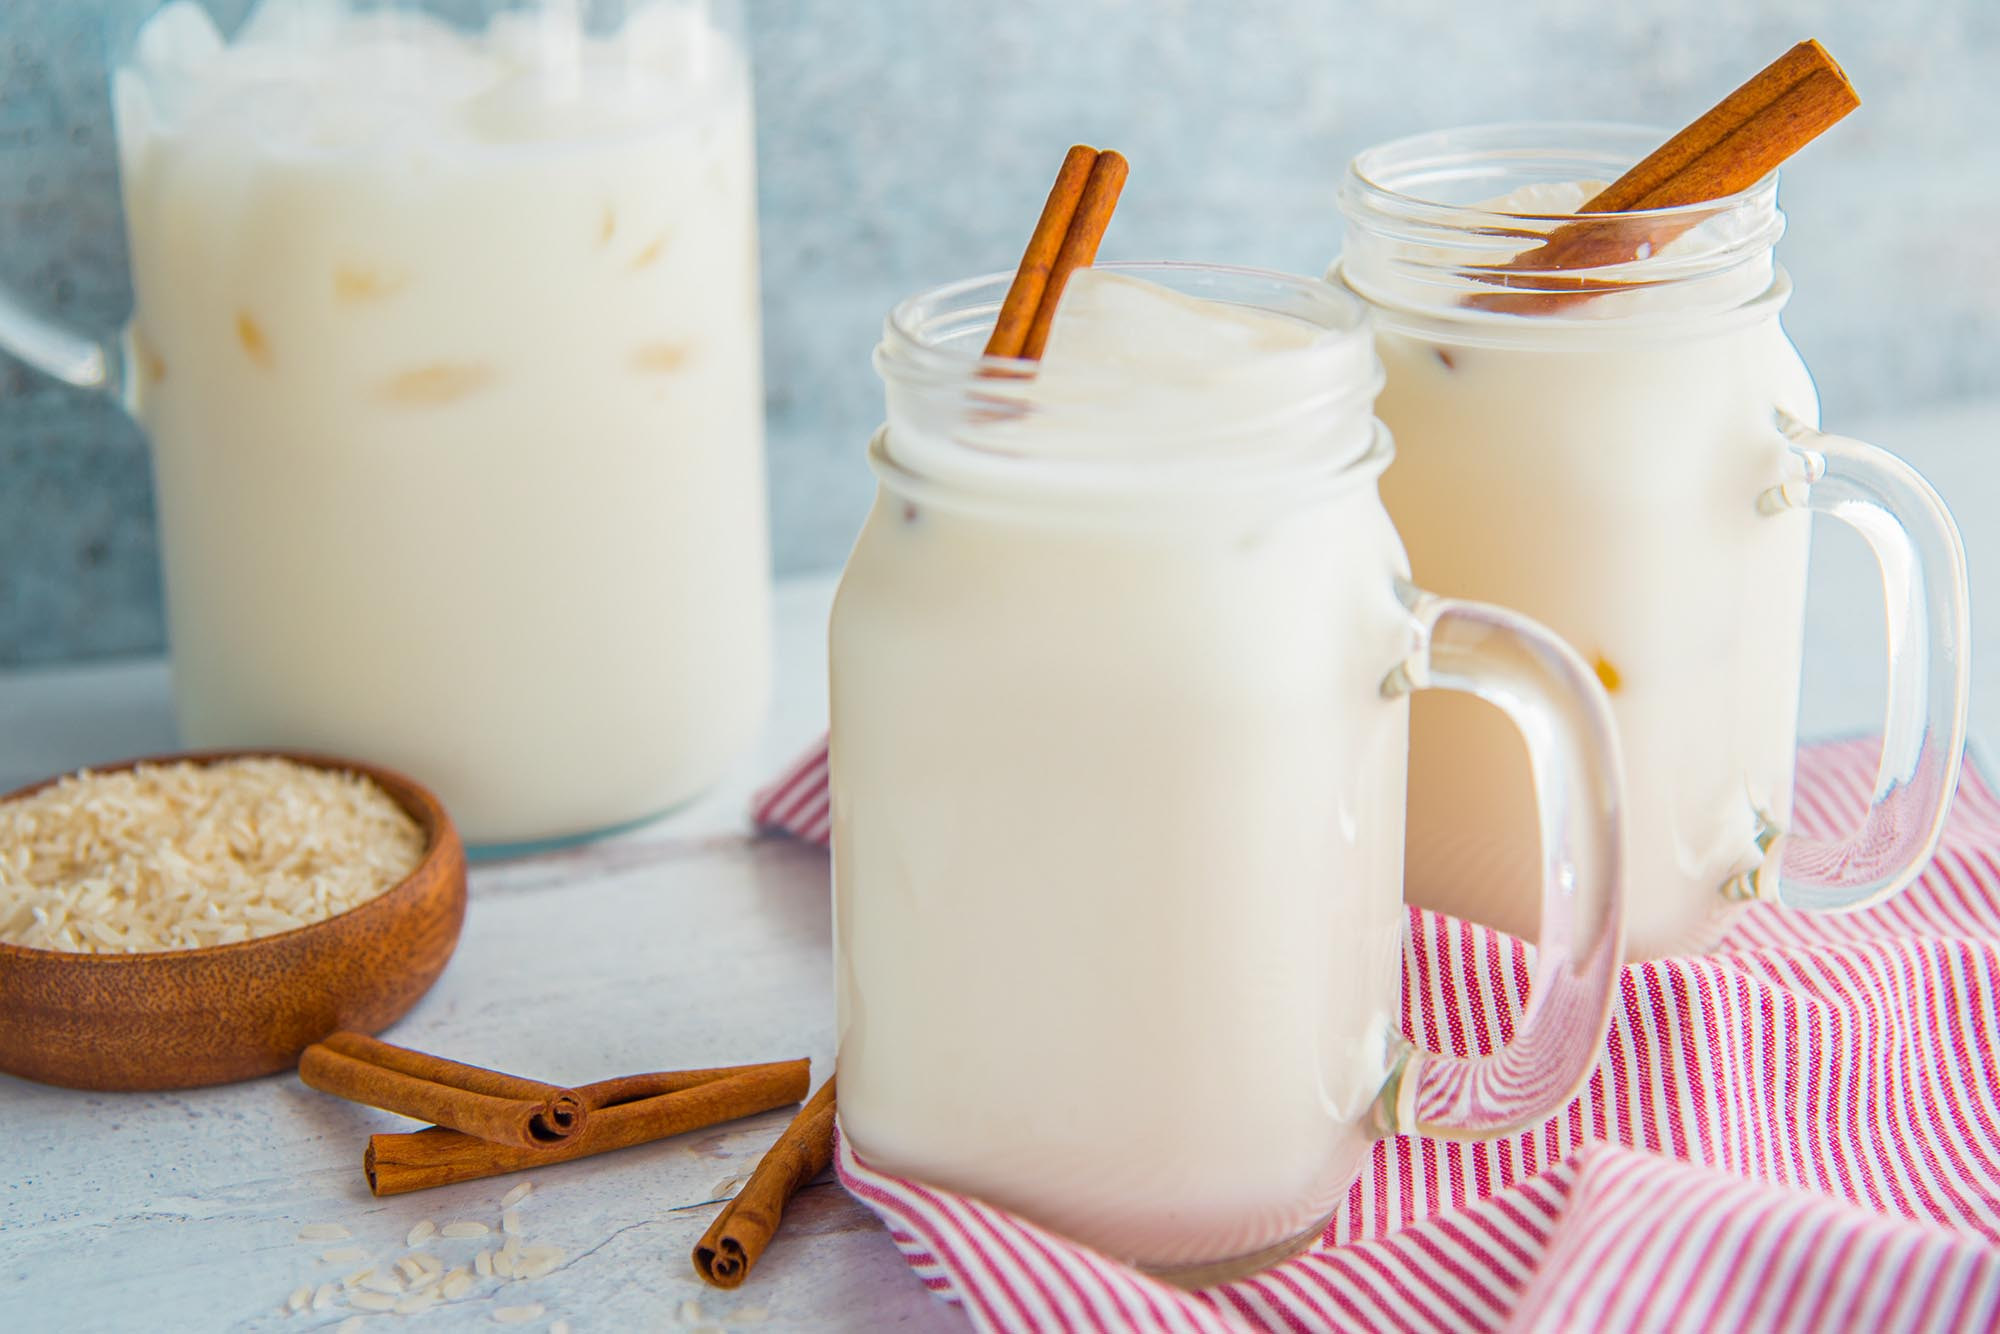 A large mason jar of easy homemade horchata with a cinnamon stick inside is in front of a similar glass and a pitcher of homemade horchata. A small bowl of rice and cinnamon sticks are to the left.